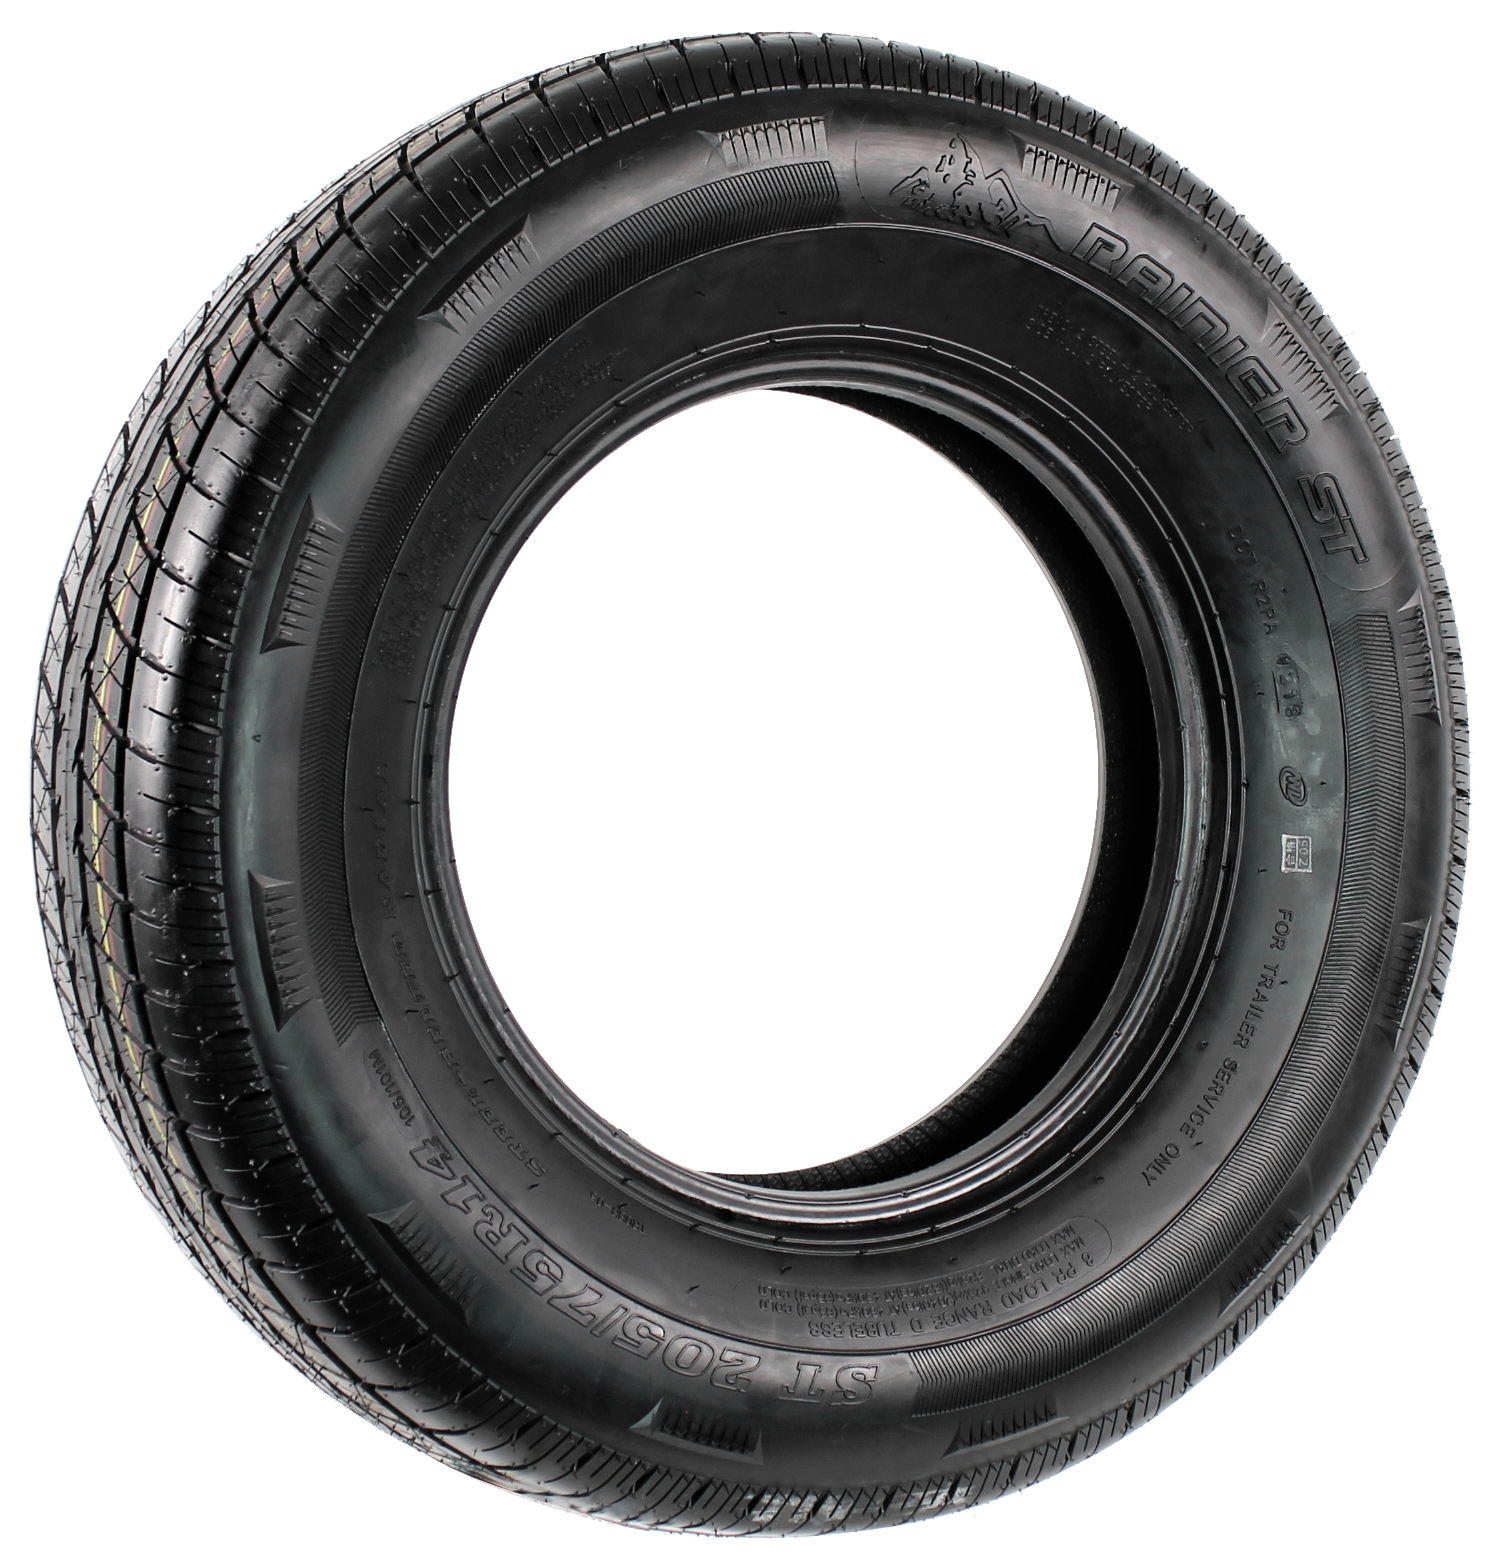 Rainier ST205/75R14 LRD 8-Ply Radial Trailer Tire Image